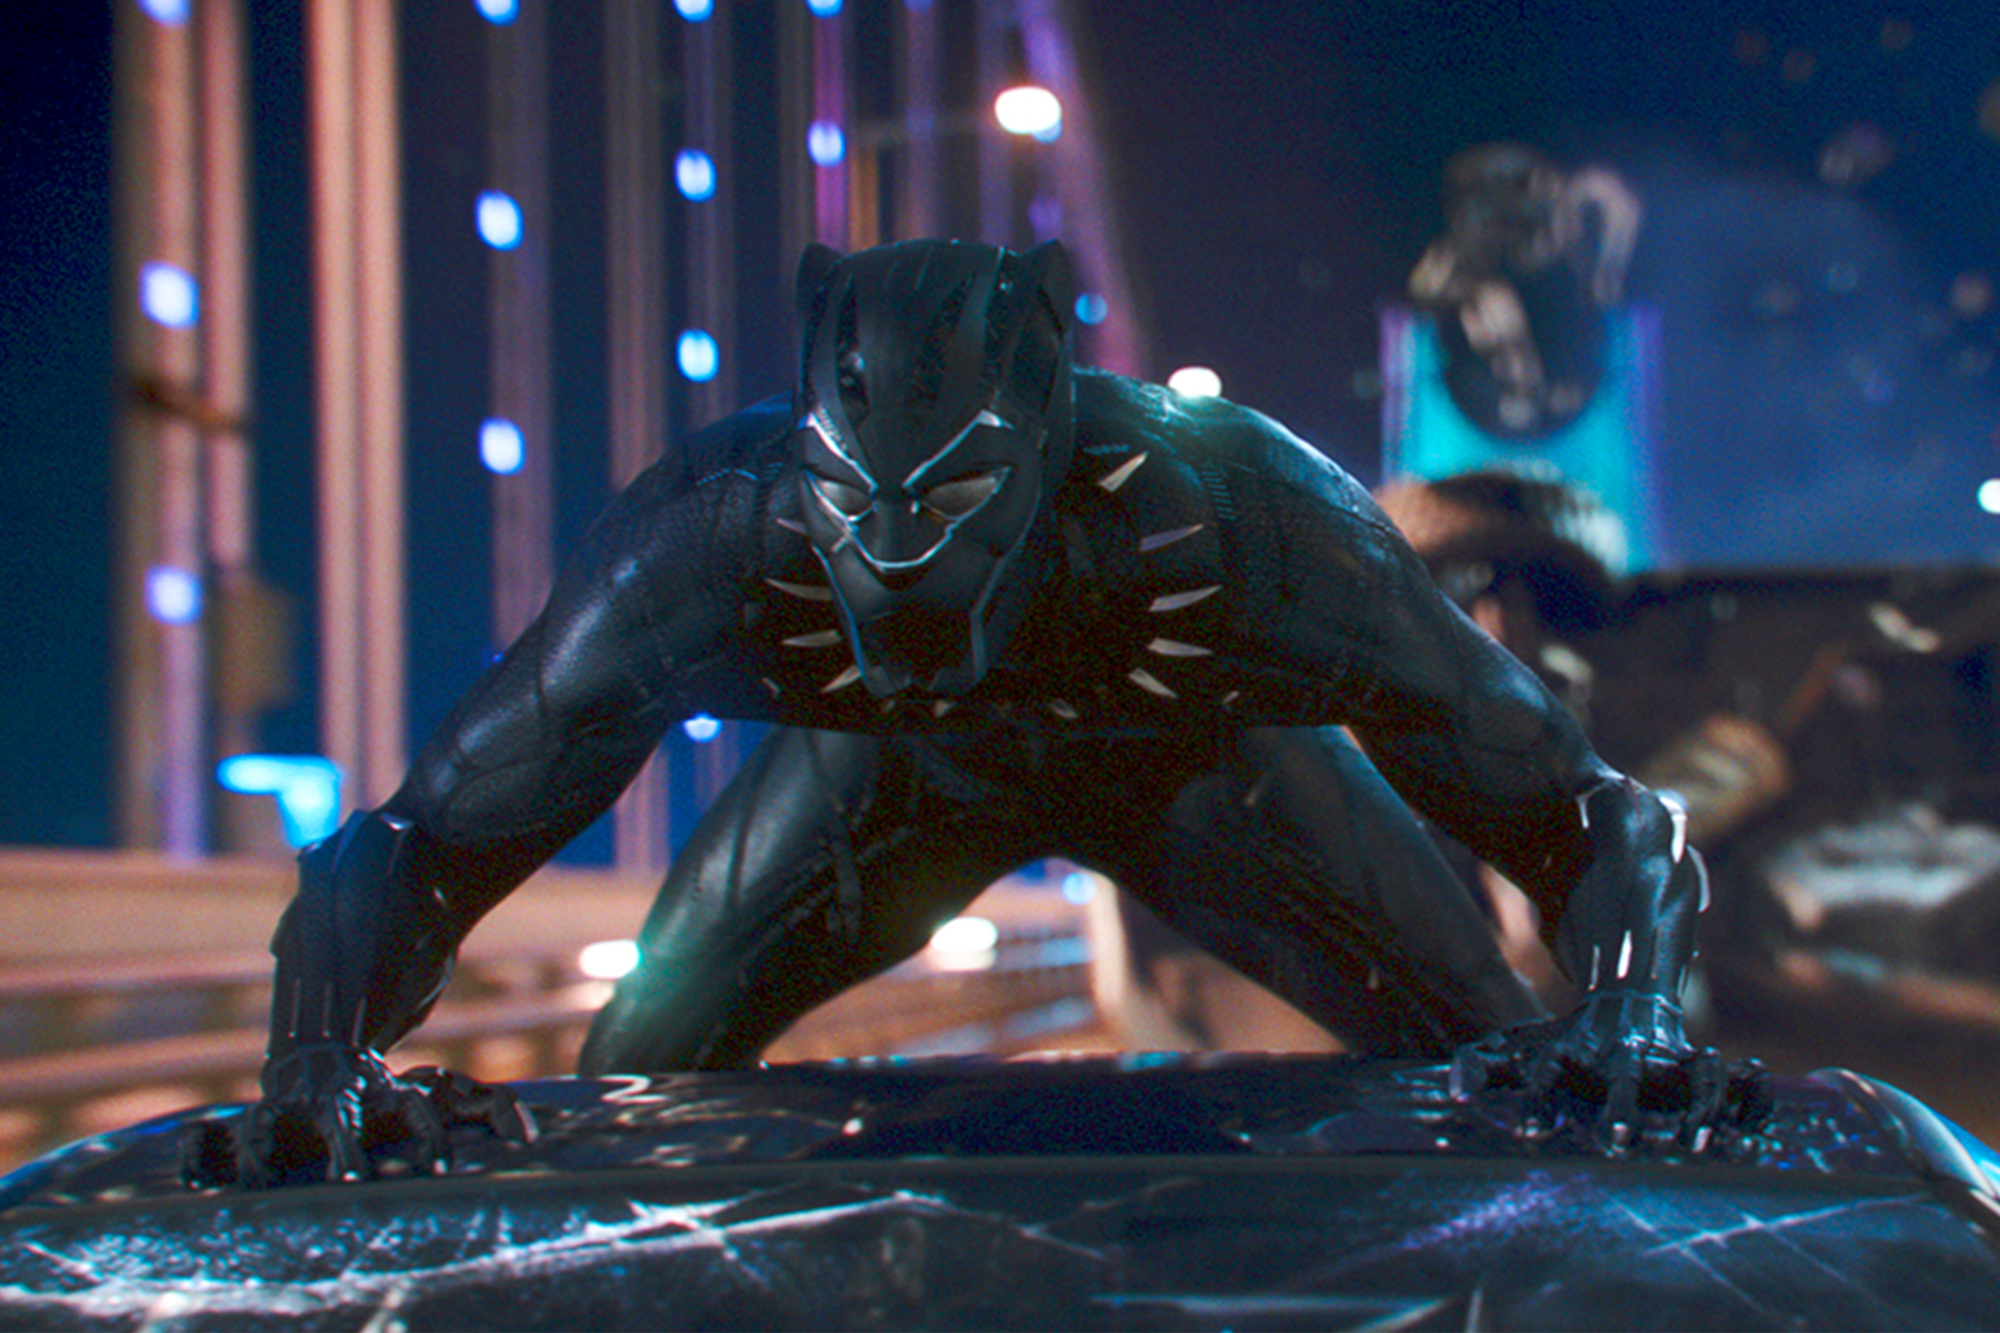 'Black Panther' sequel set to begin filming in July of 2021